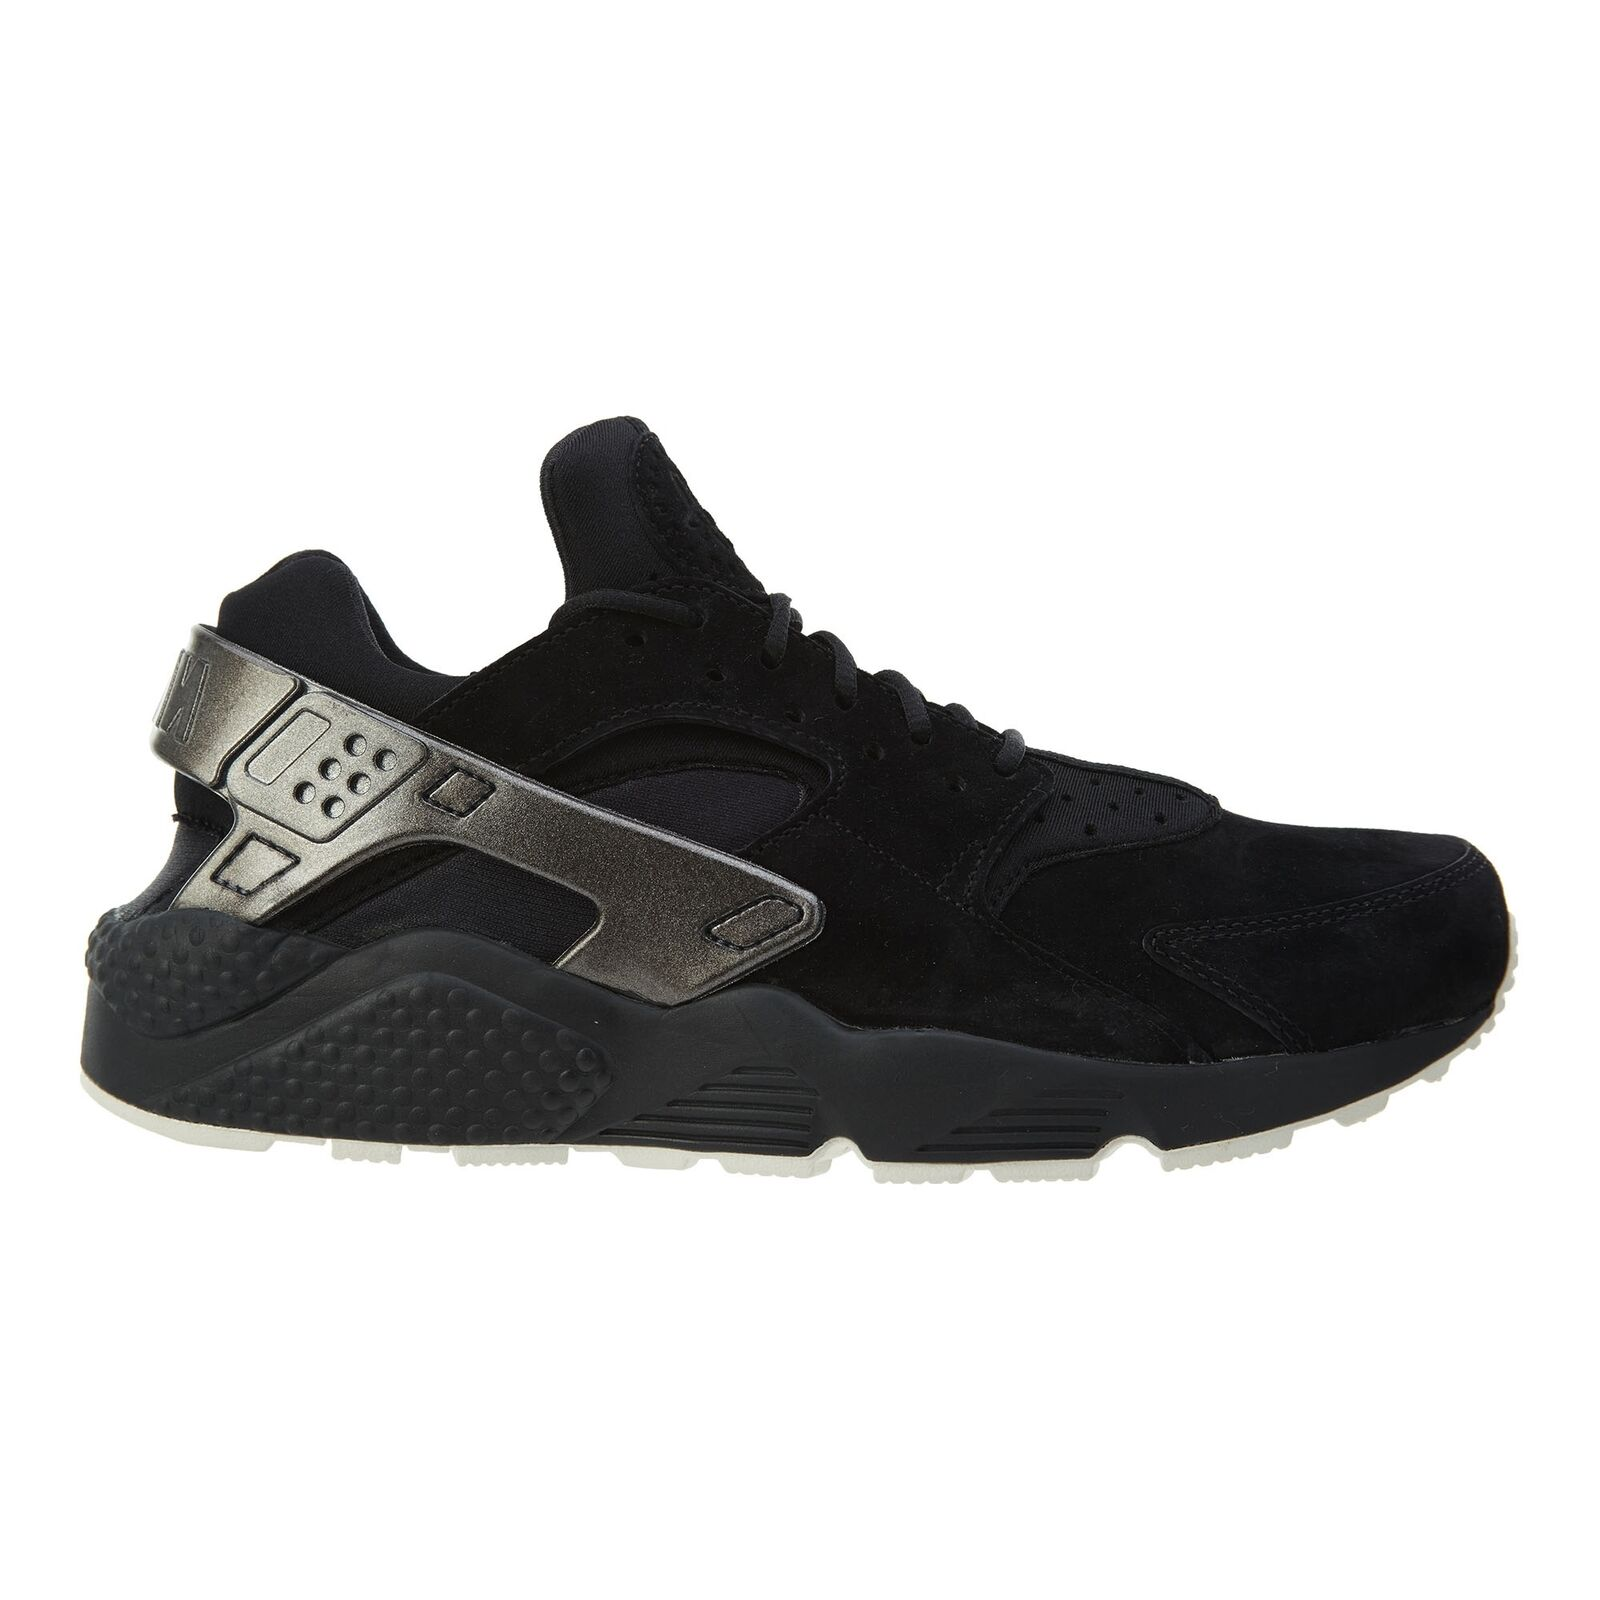 Nike Air Huarache Run Premium Mens 704830-014 Black Sail Running Shoes Comfortable Seasonal price cuts, discount benefits